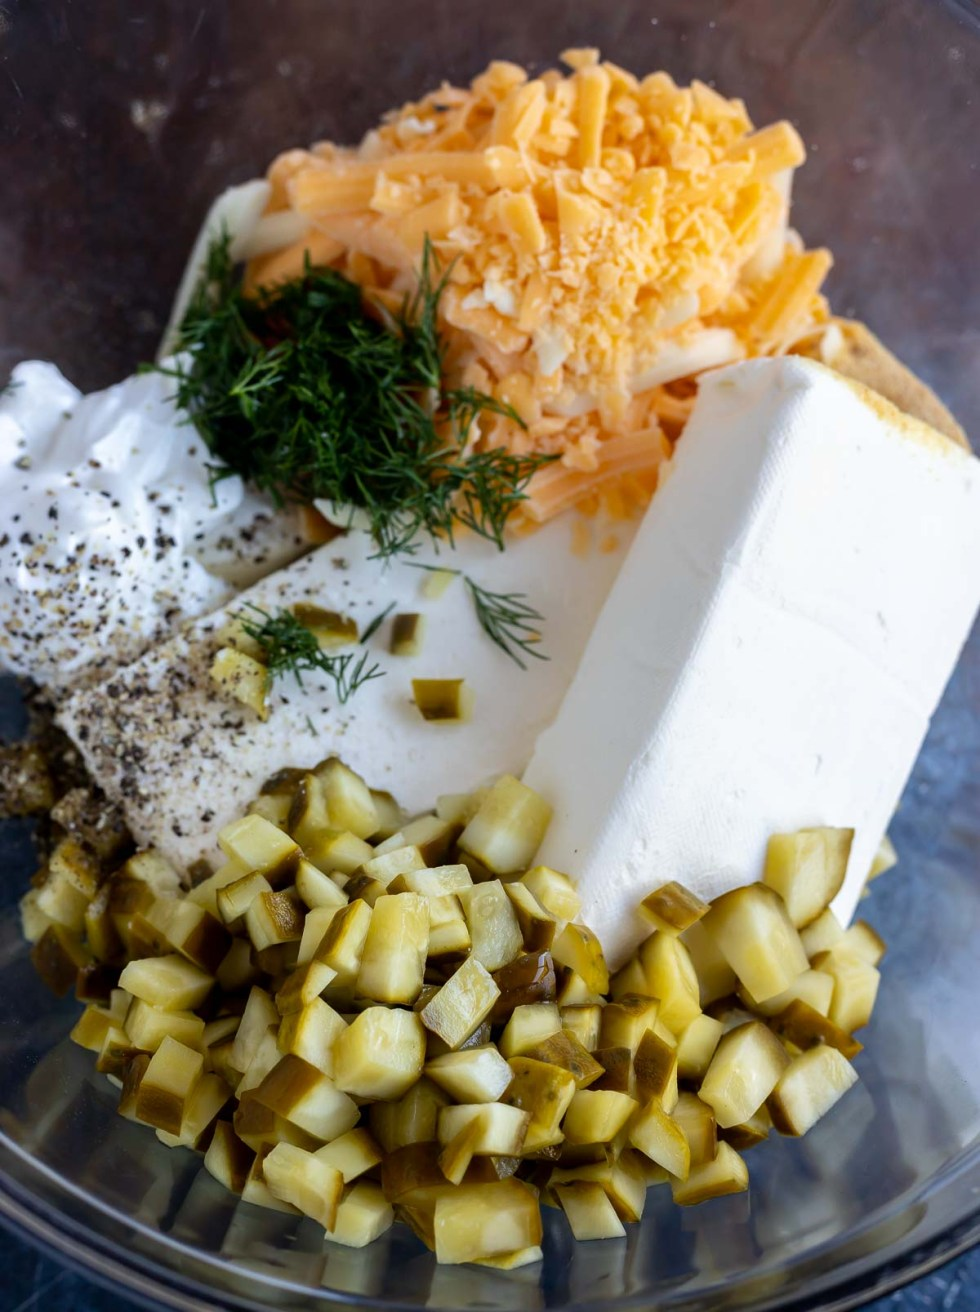 cheese ball ingredients in clear glass bowl